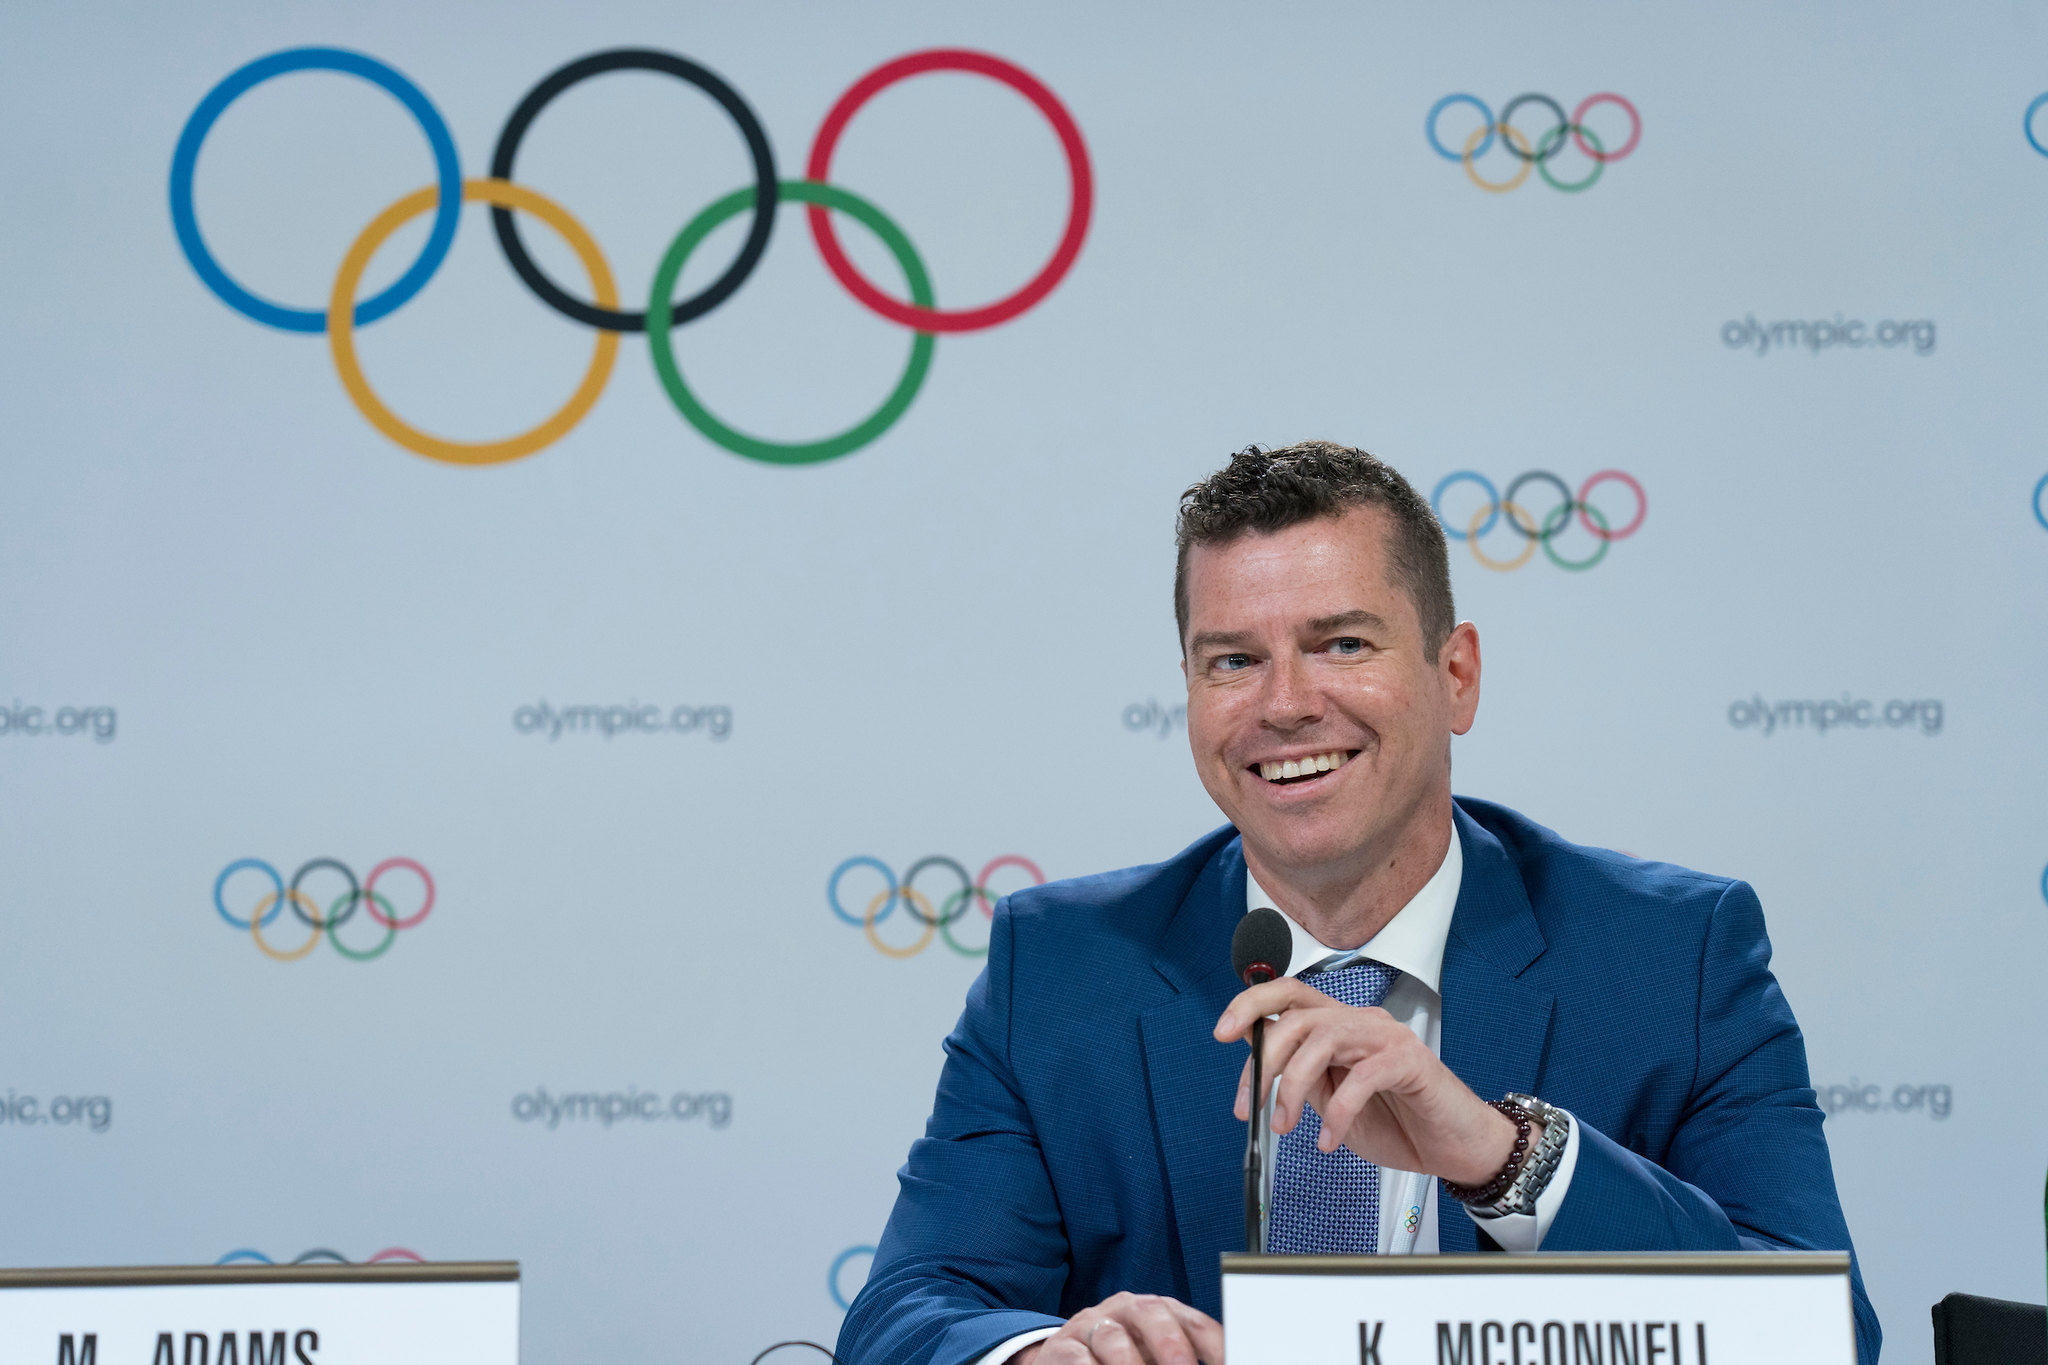 IOC sports director Kit McConnell provided an update on the AIBA situation to the Session ©IOC